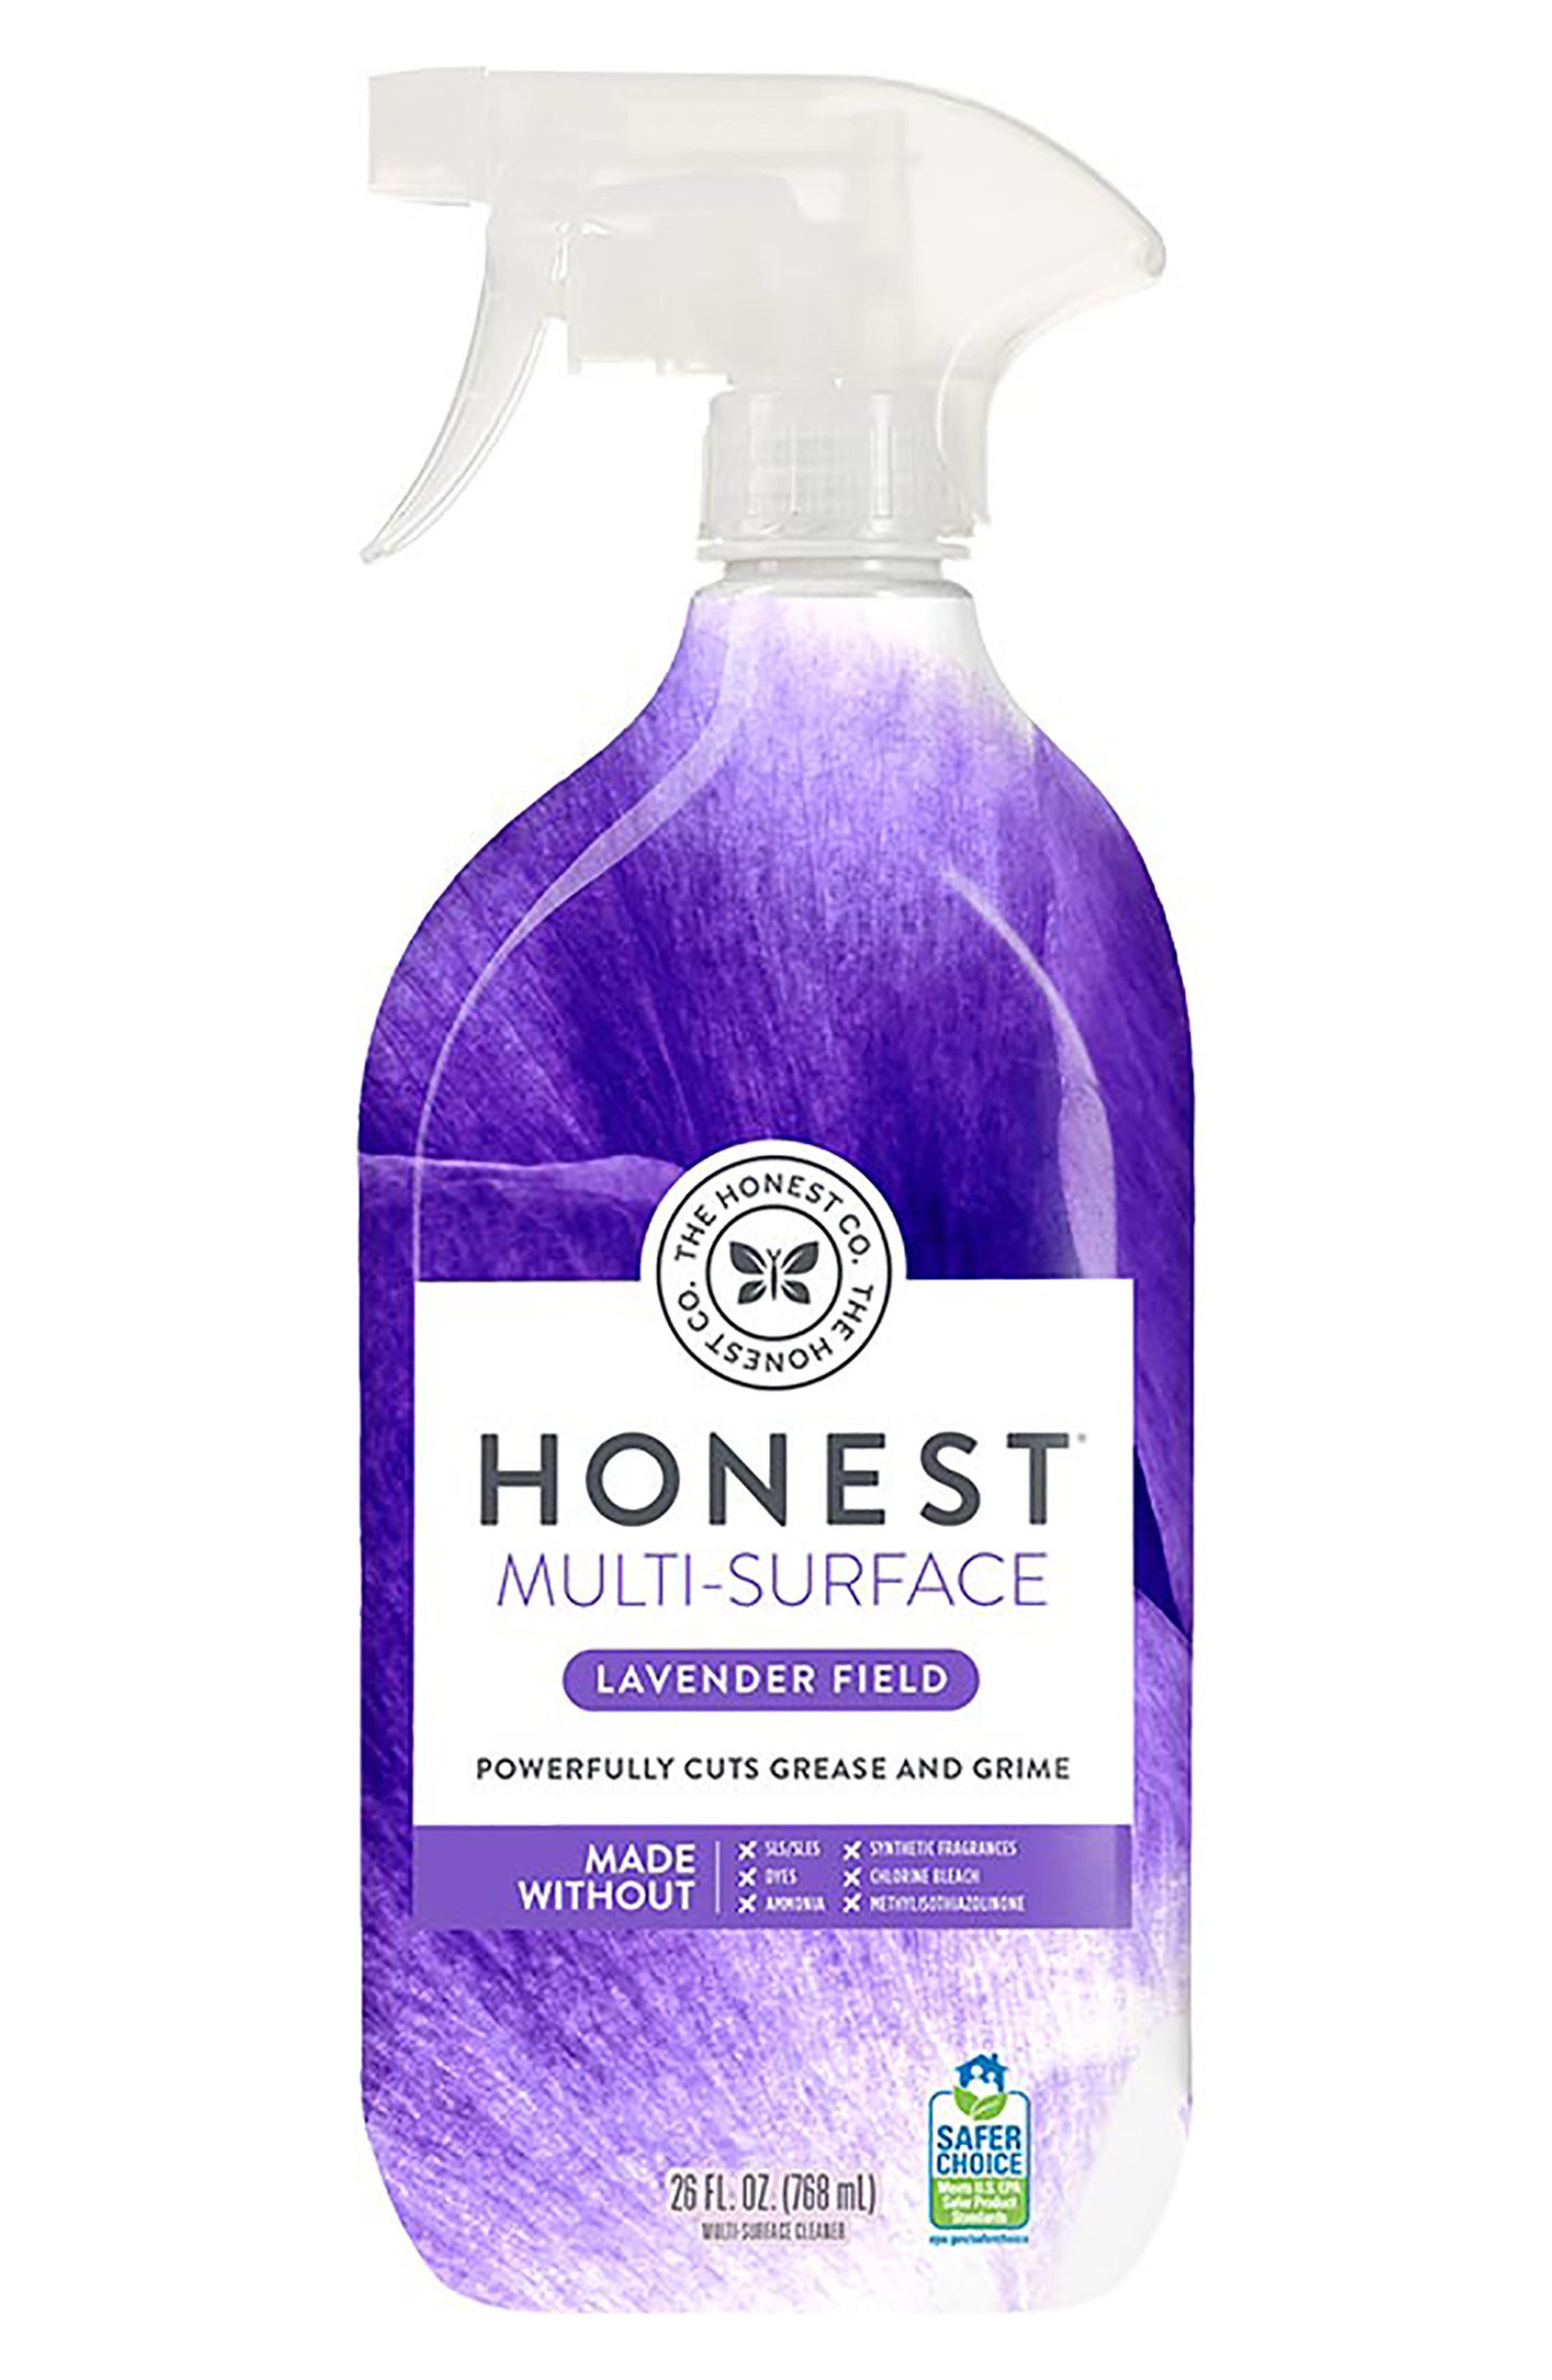 The Honest Company Lavender Field Multi-Surface Cleaner